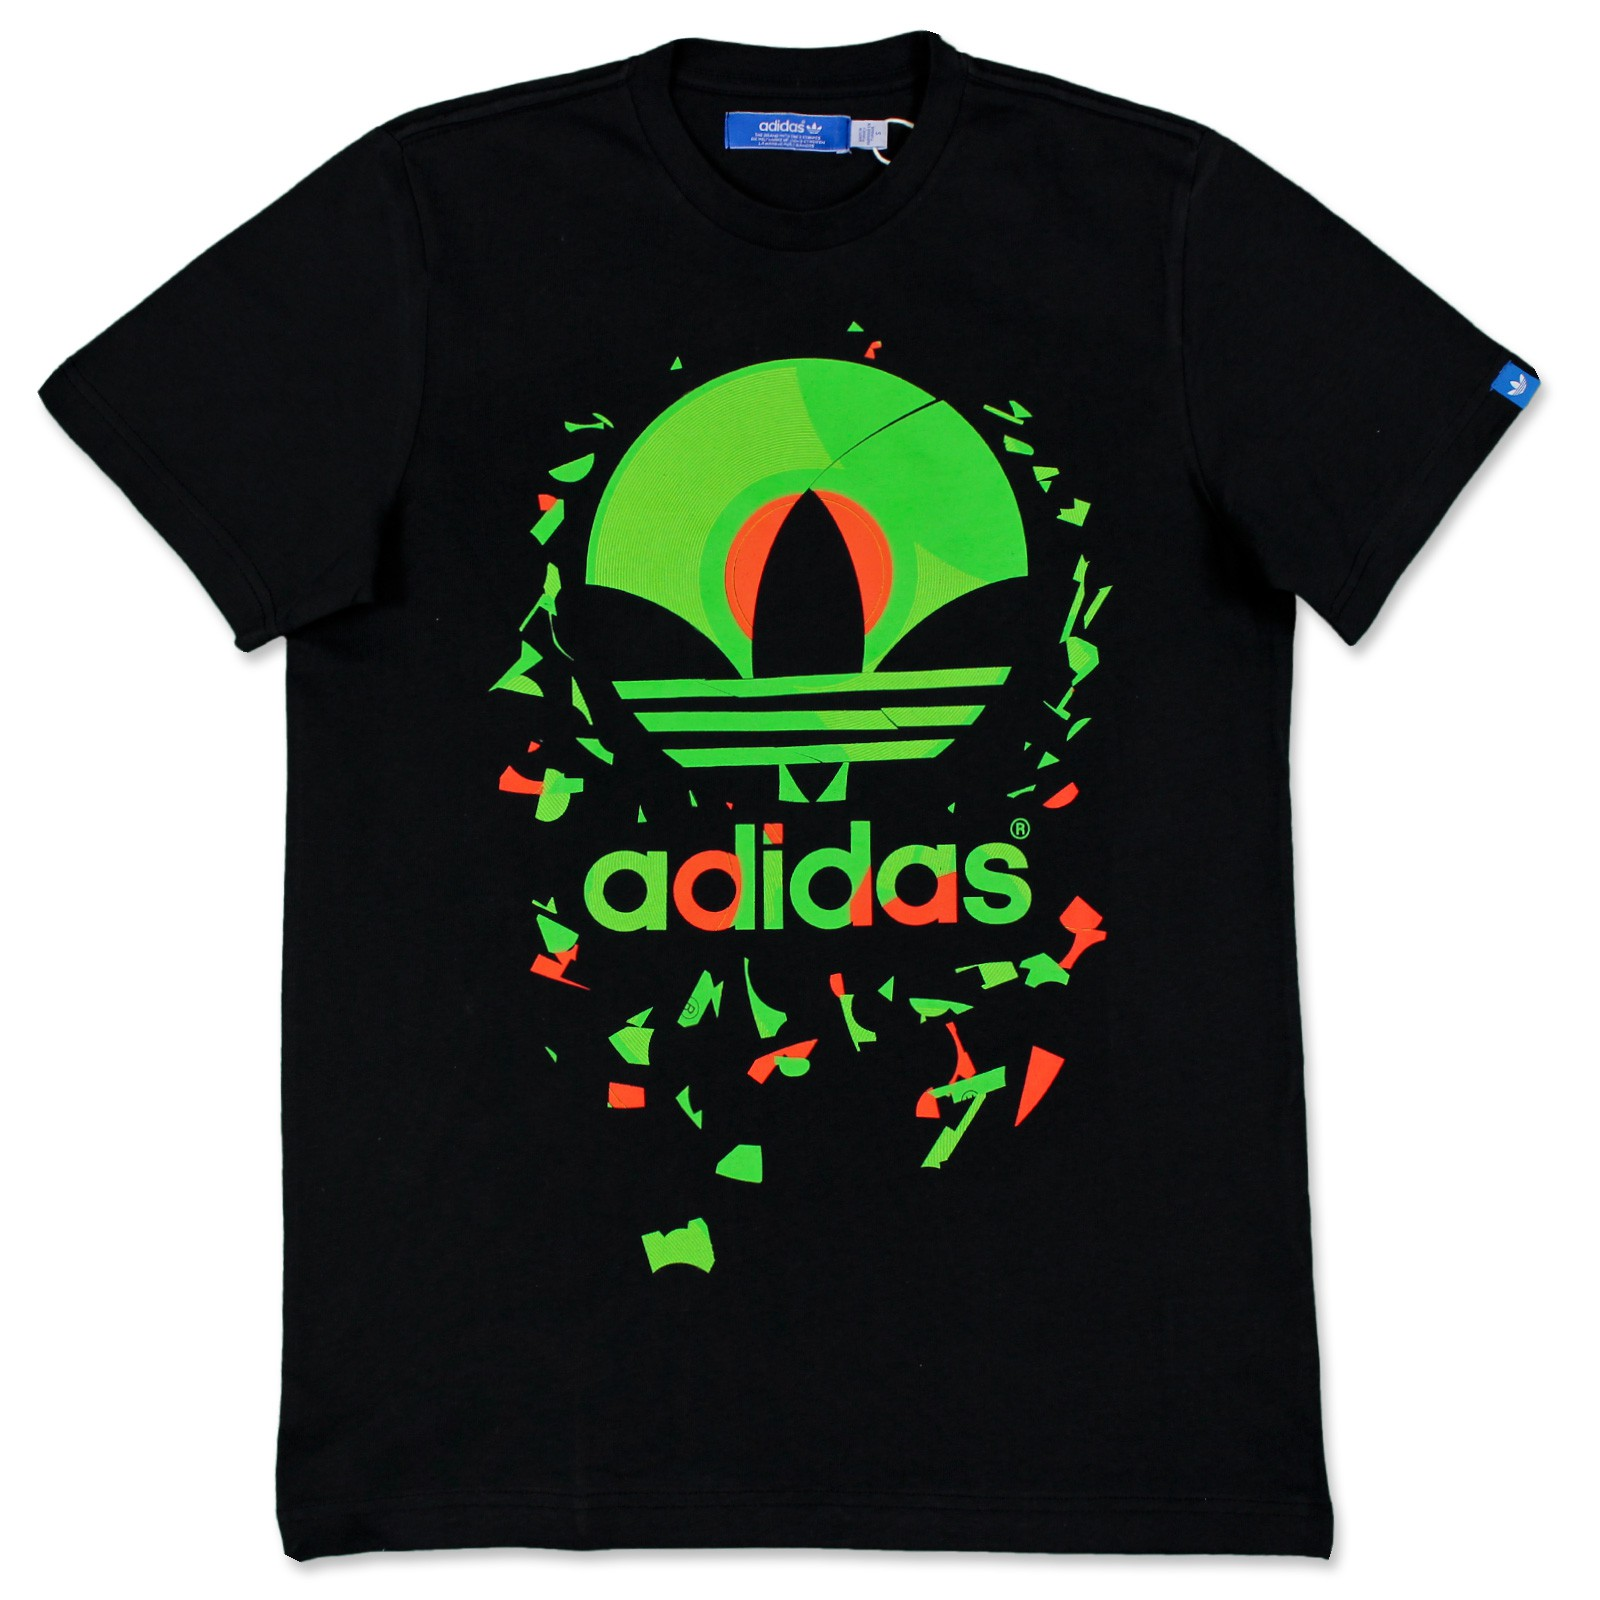 Adidas originals trefoil tee herren freizeit kult t shirt for Adidas long sleeve t shirt with trefoil logo